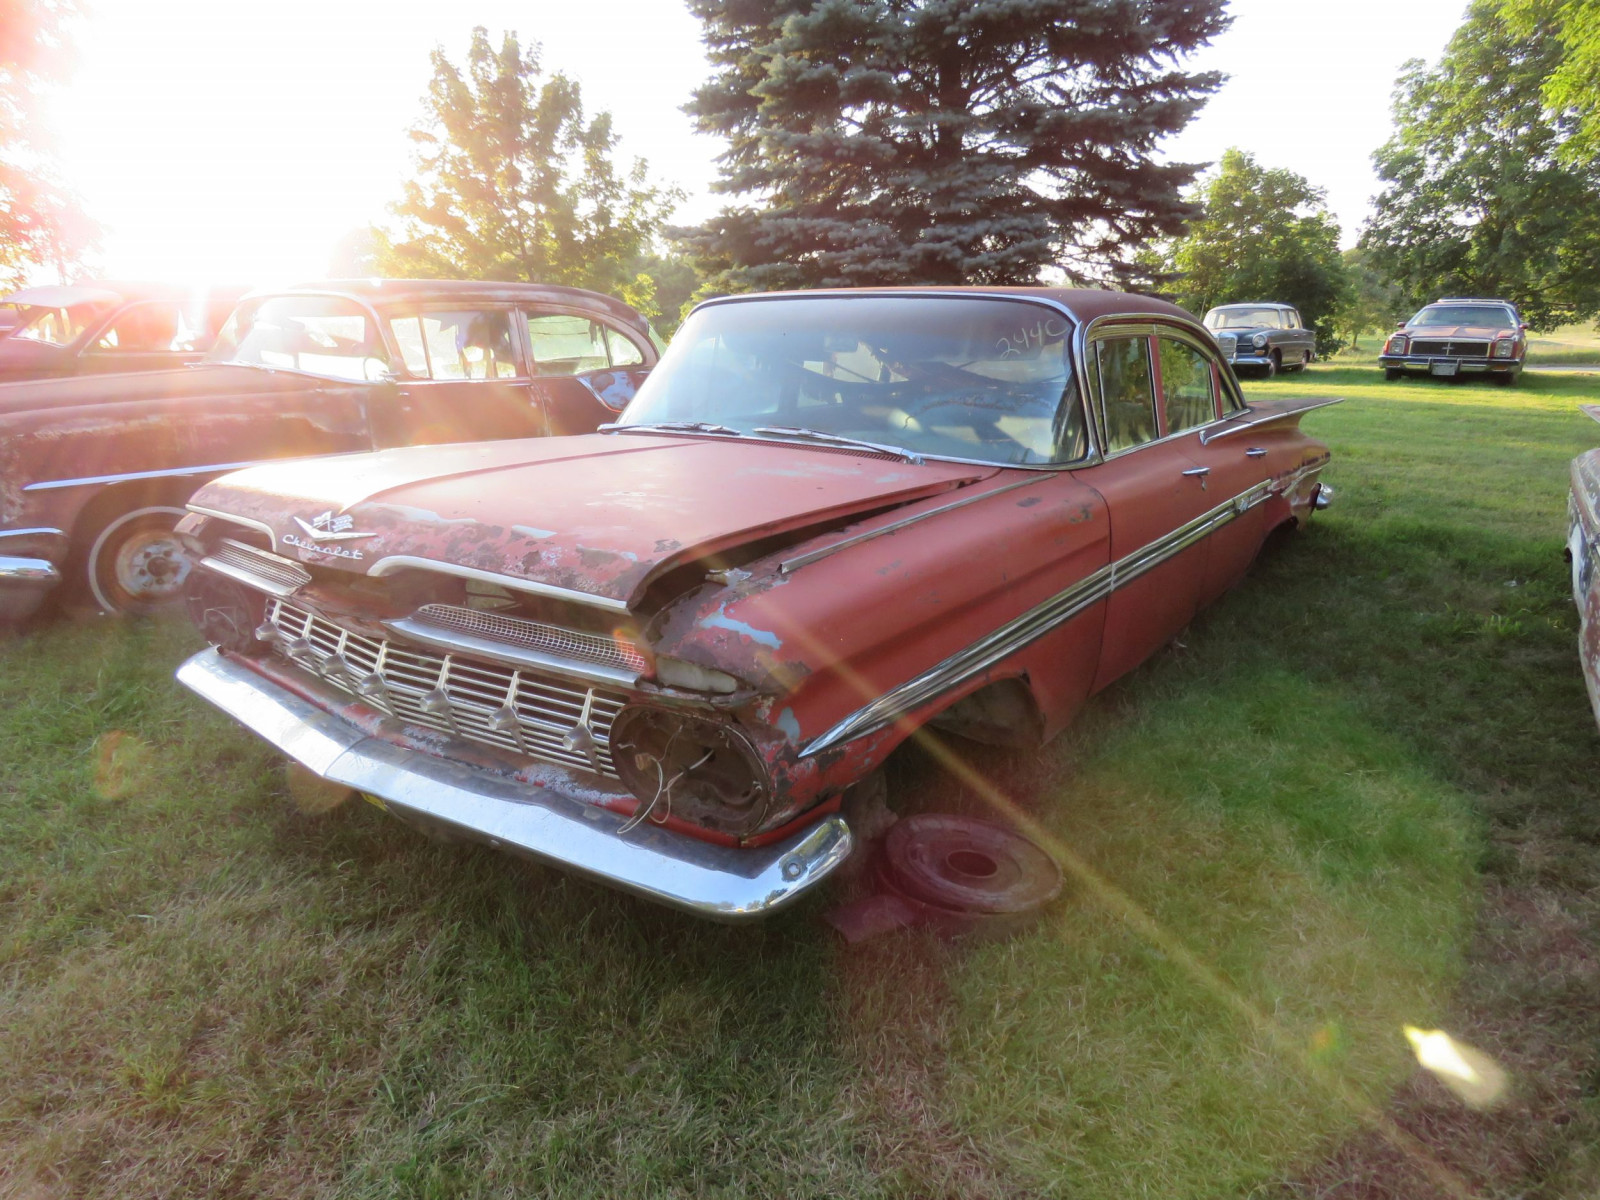 1959 Chevrolet 4dr Sedan for parts or project - Image 1